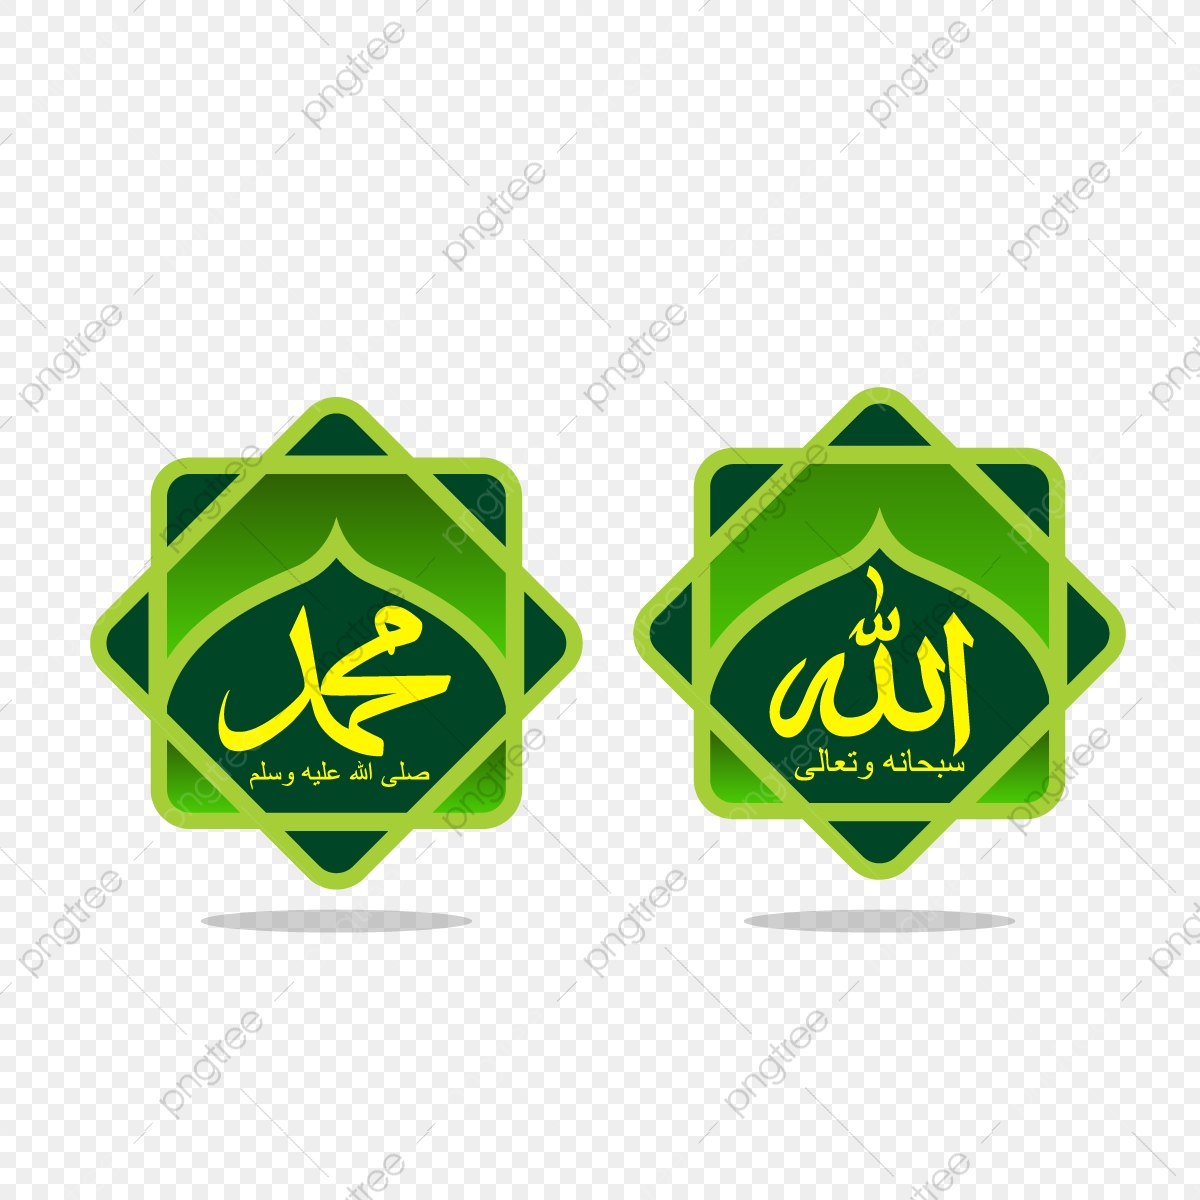 Muhammad Png Vector Psd And Clipart With Transparent Background For Free Download Pngtree